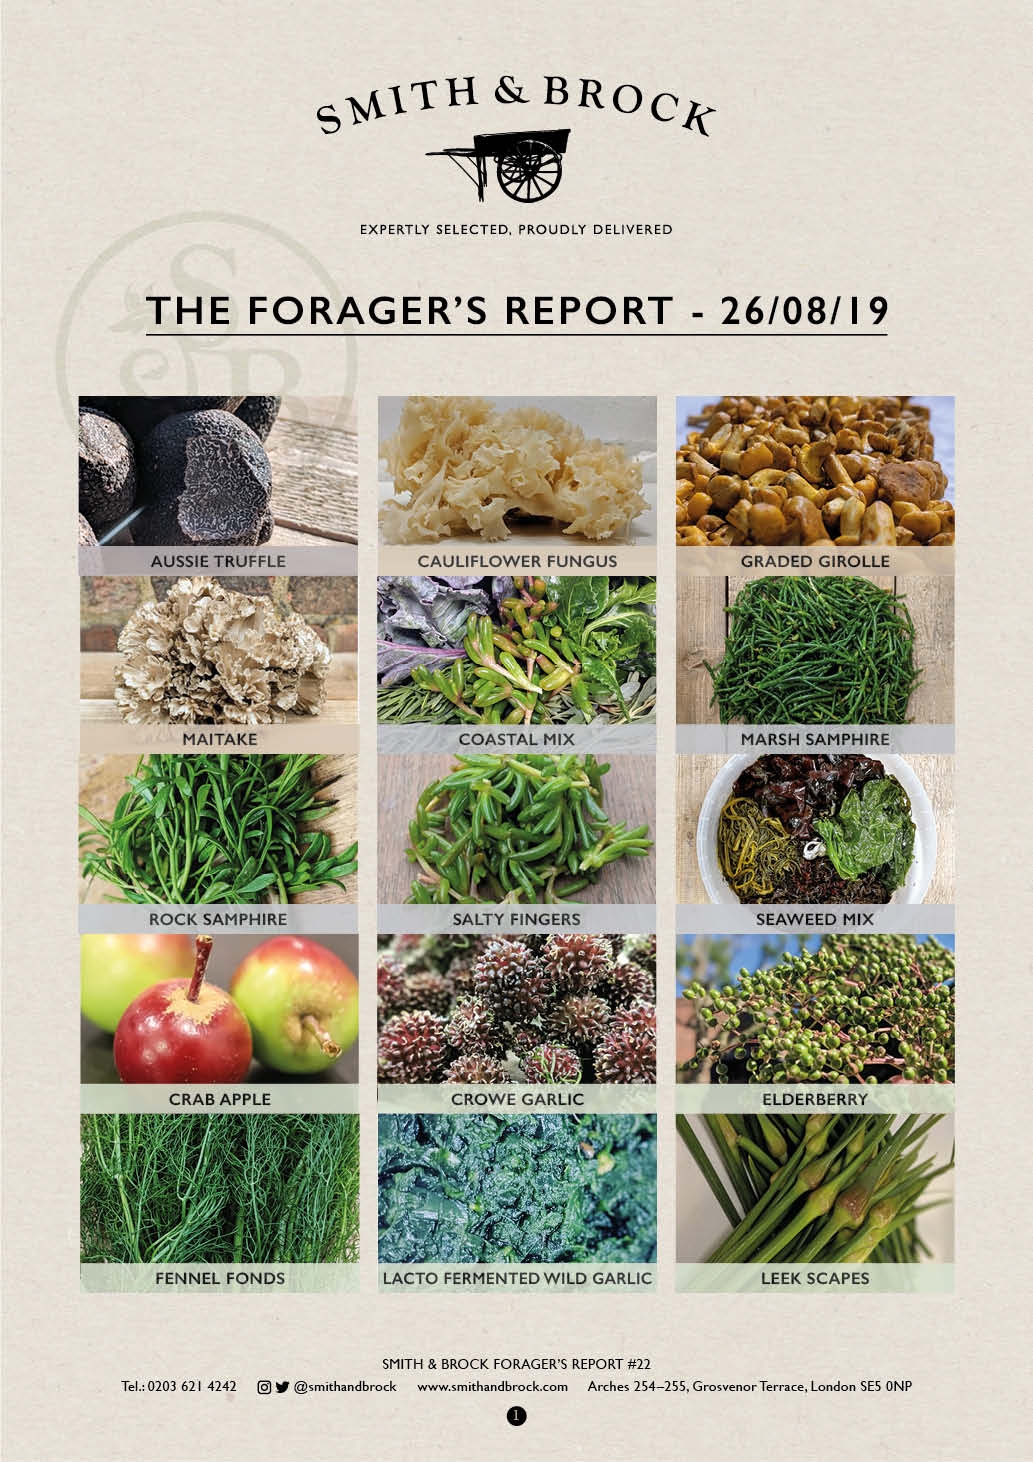 Smith&Brock Foraged Products Report 26 August 2019 22